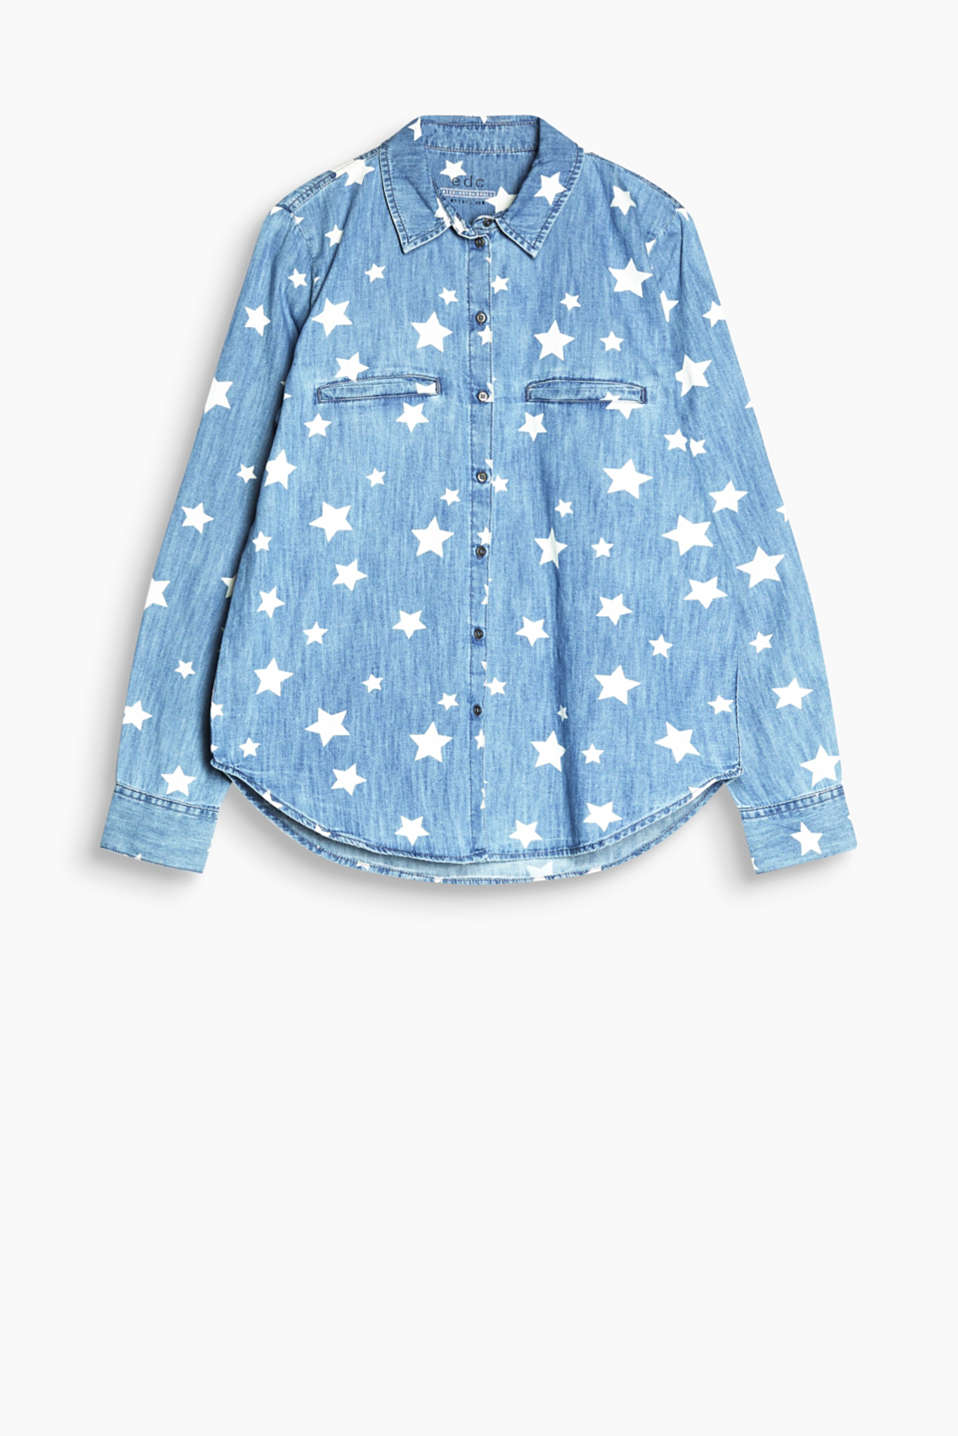 Pretty prints: shirt blouse made of soft cotton denim with a heart or star print.